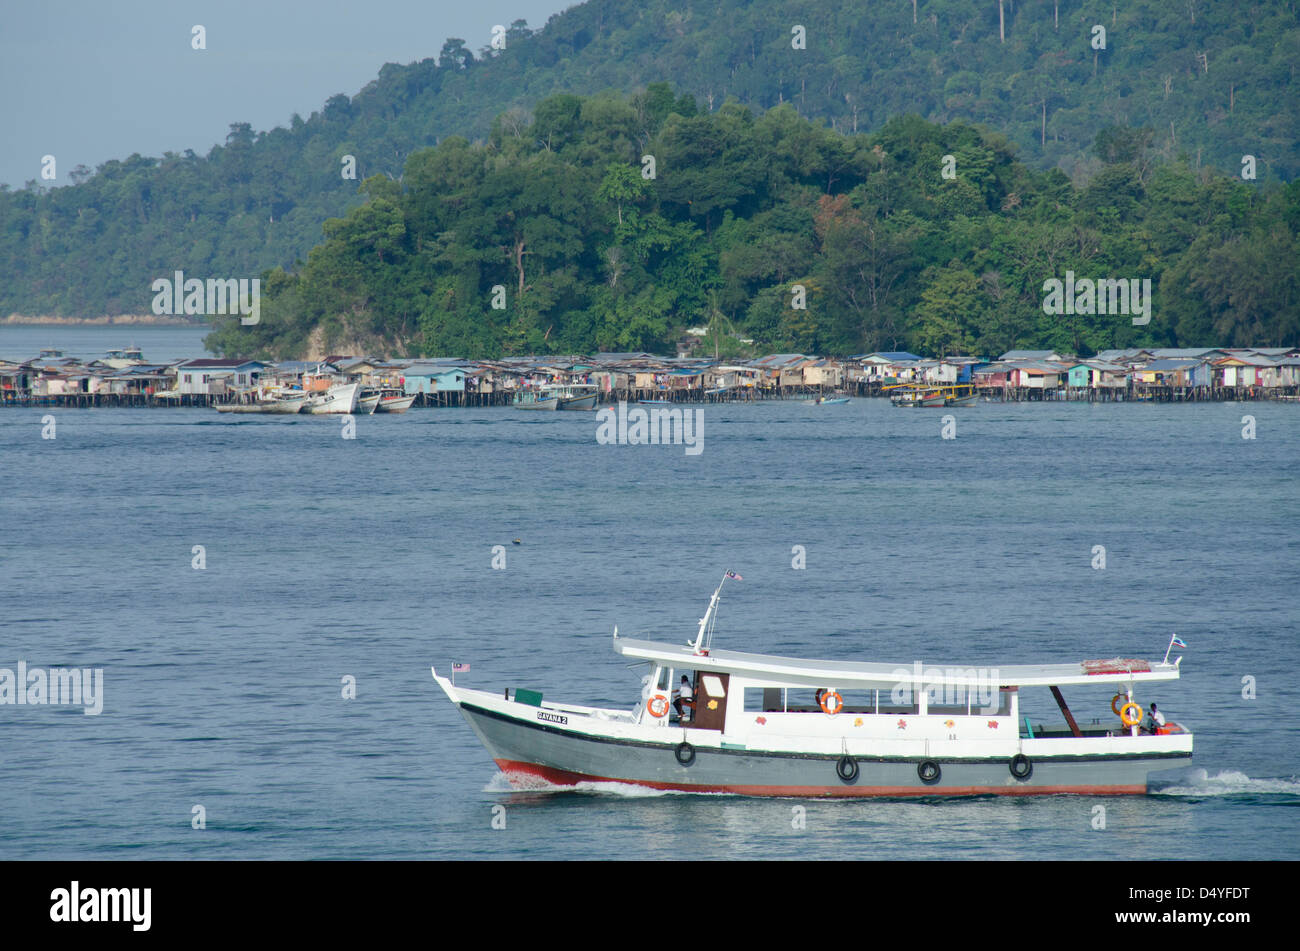 Malaysia, Borneo, Sabah, Sultan Sea, Kota Kinabalu. Boat in front of traditional 'water village'. - Stock Image